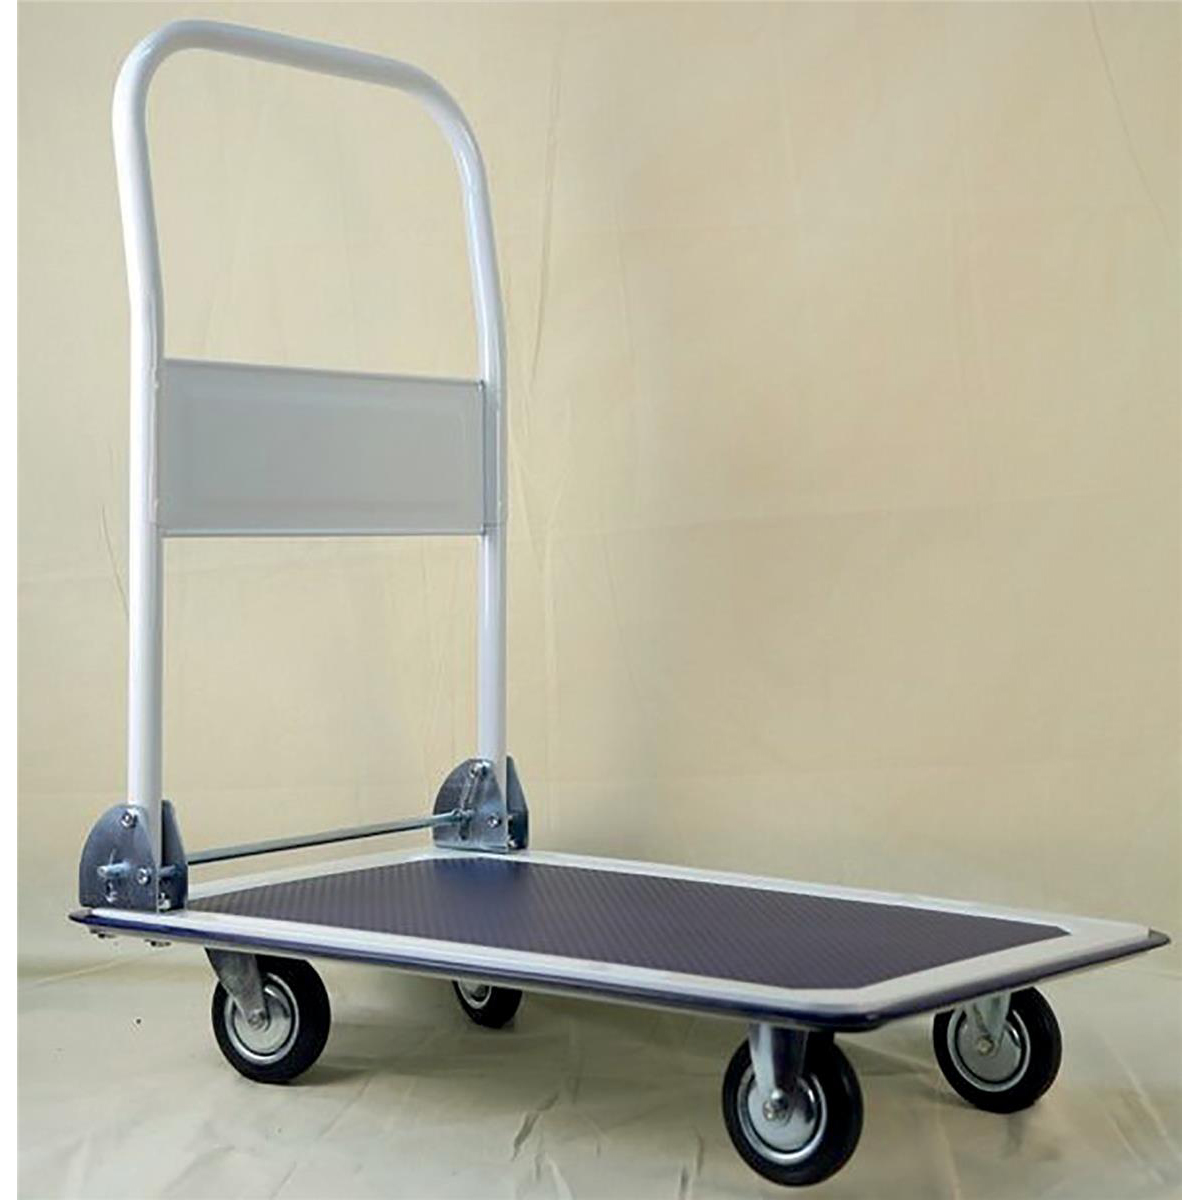 Platform Trucks 5 Star Facilities Platform Truck Standard-duty Capacity 150kg Baseboard W725xD470mm Blue and Grey